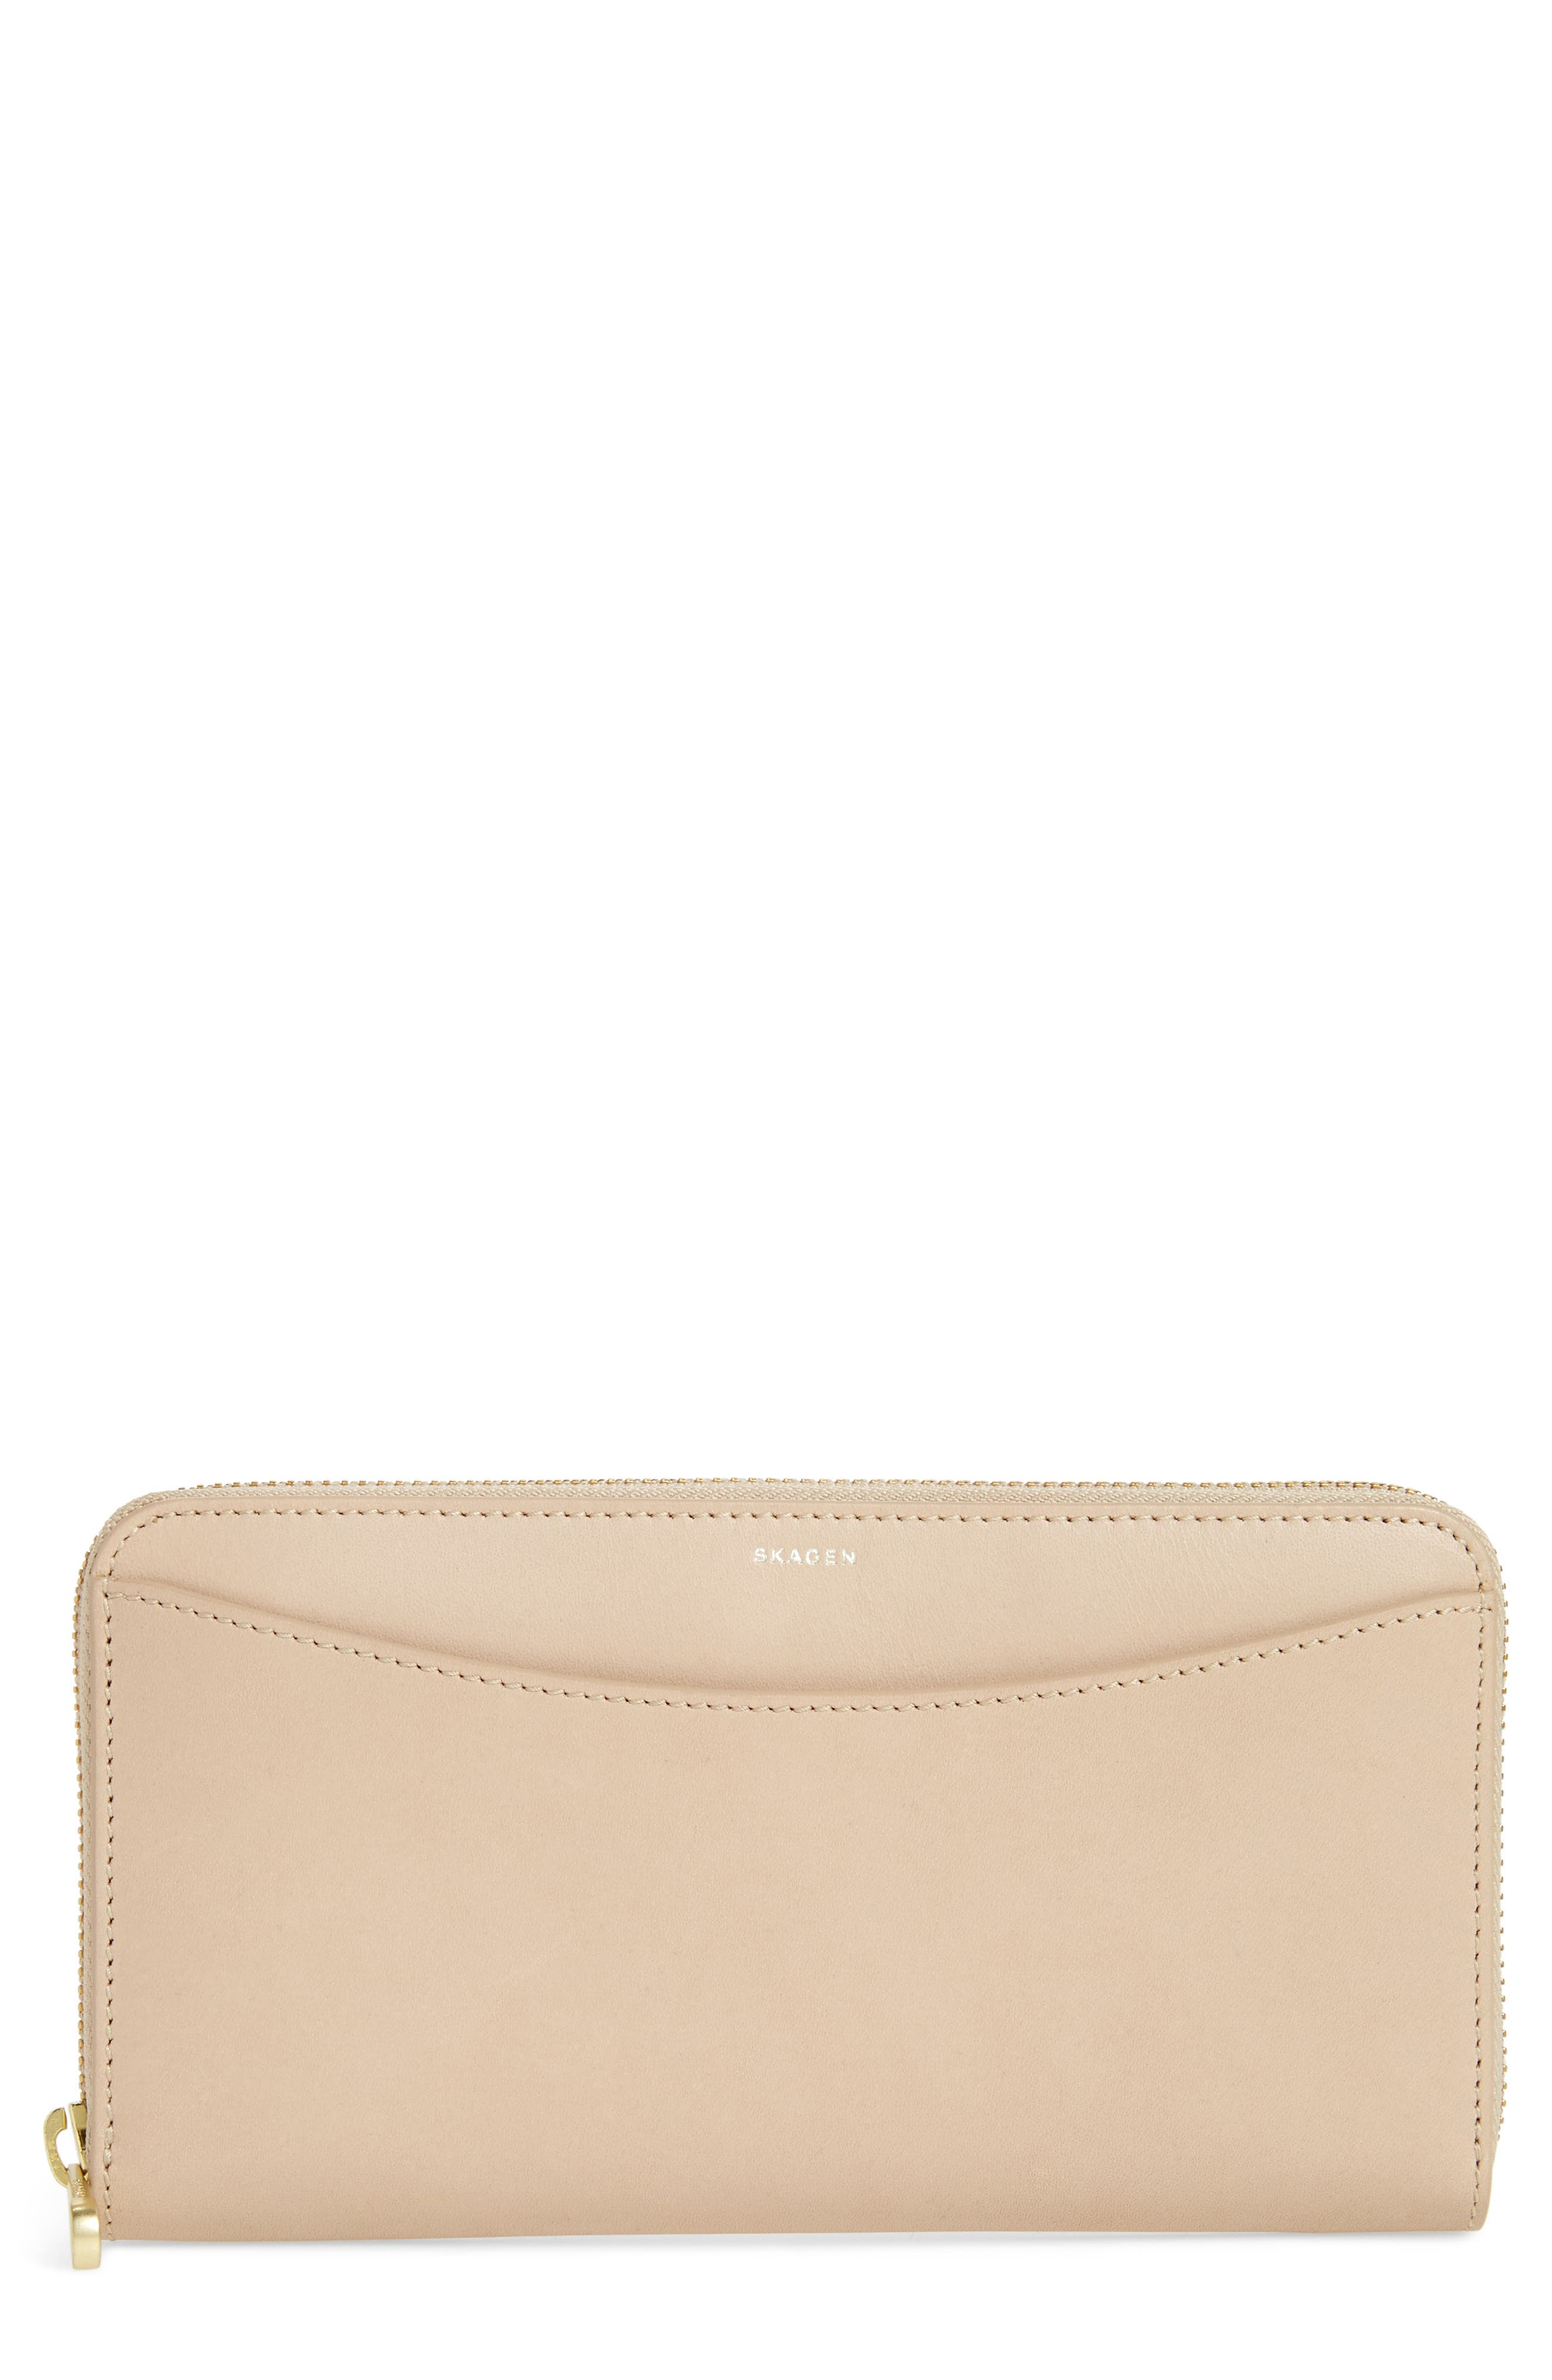 Leather Continental Wallet,                         Main,                         color, 251